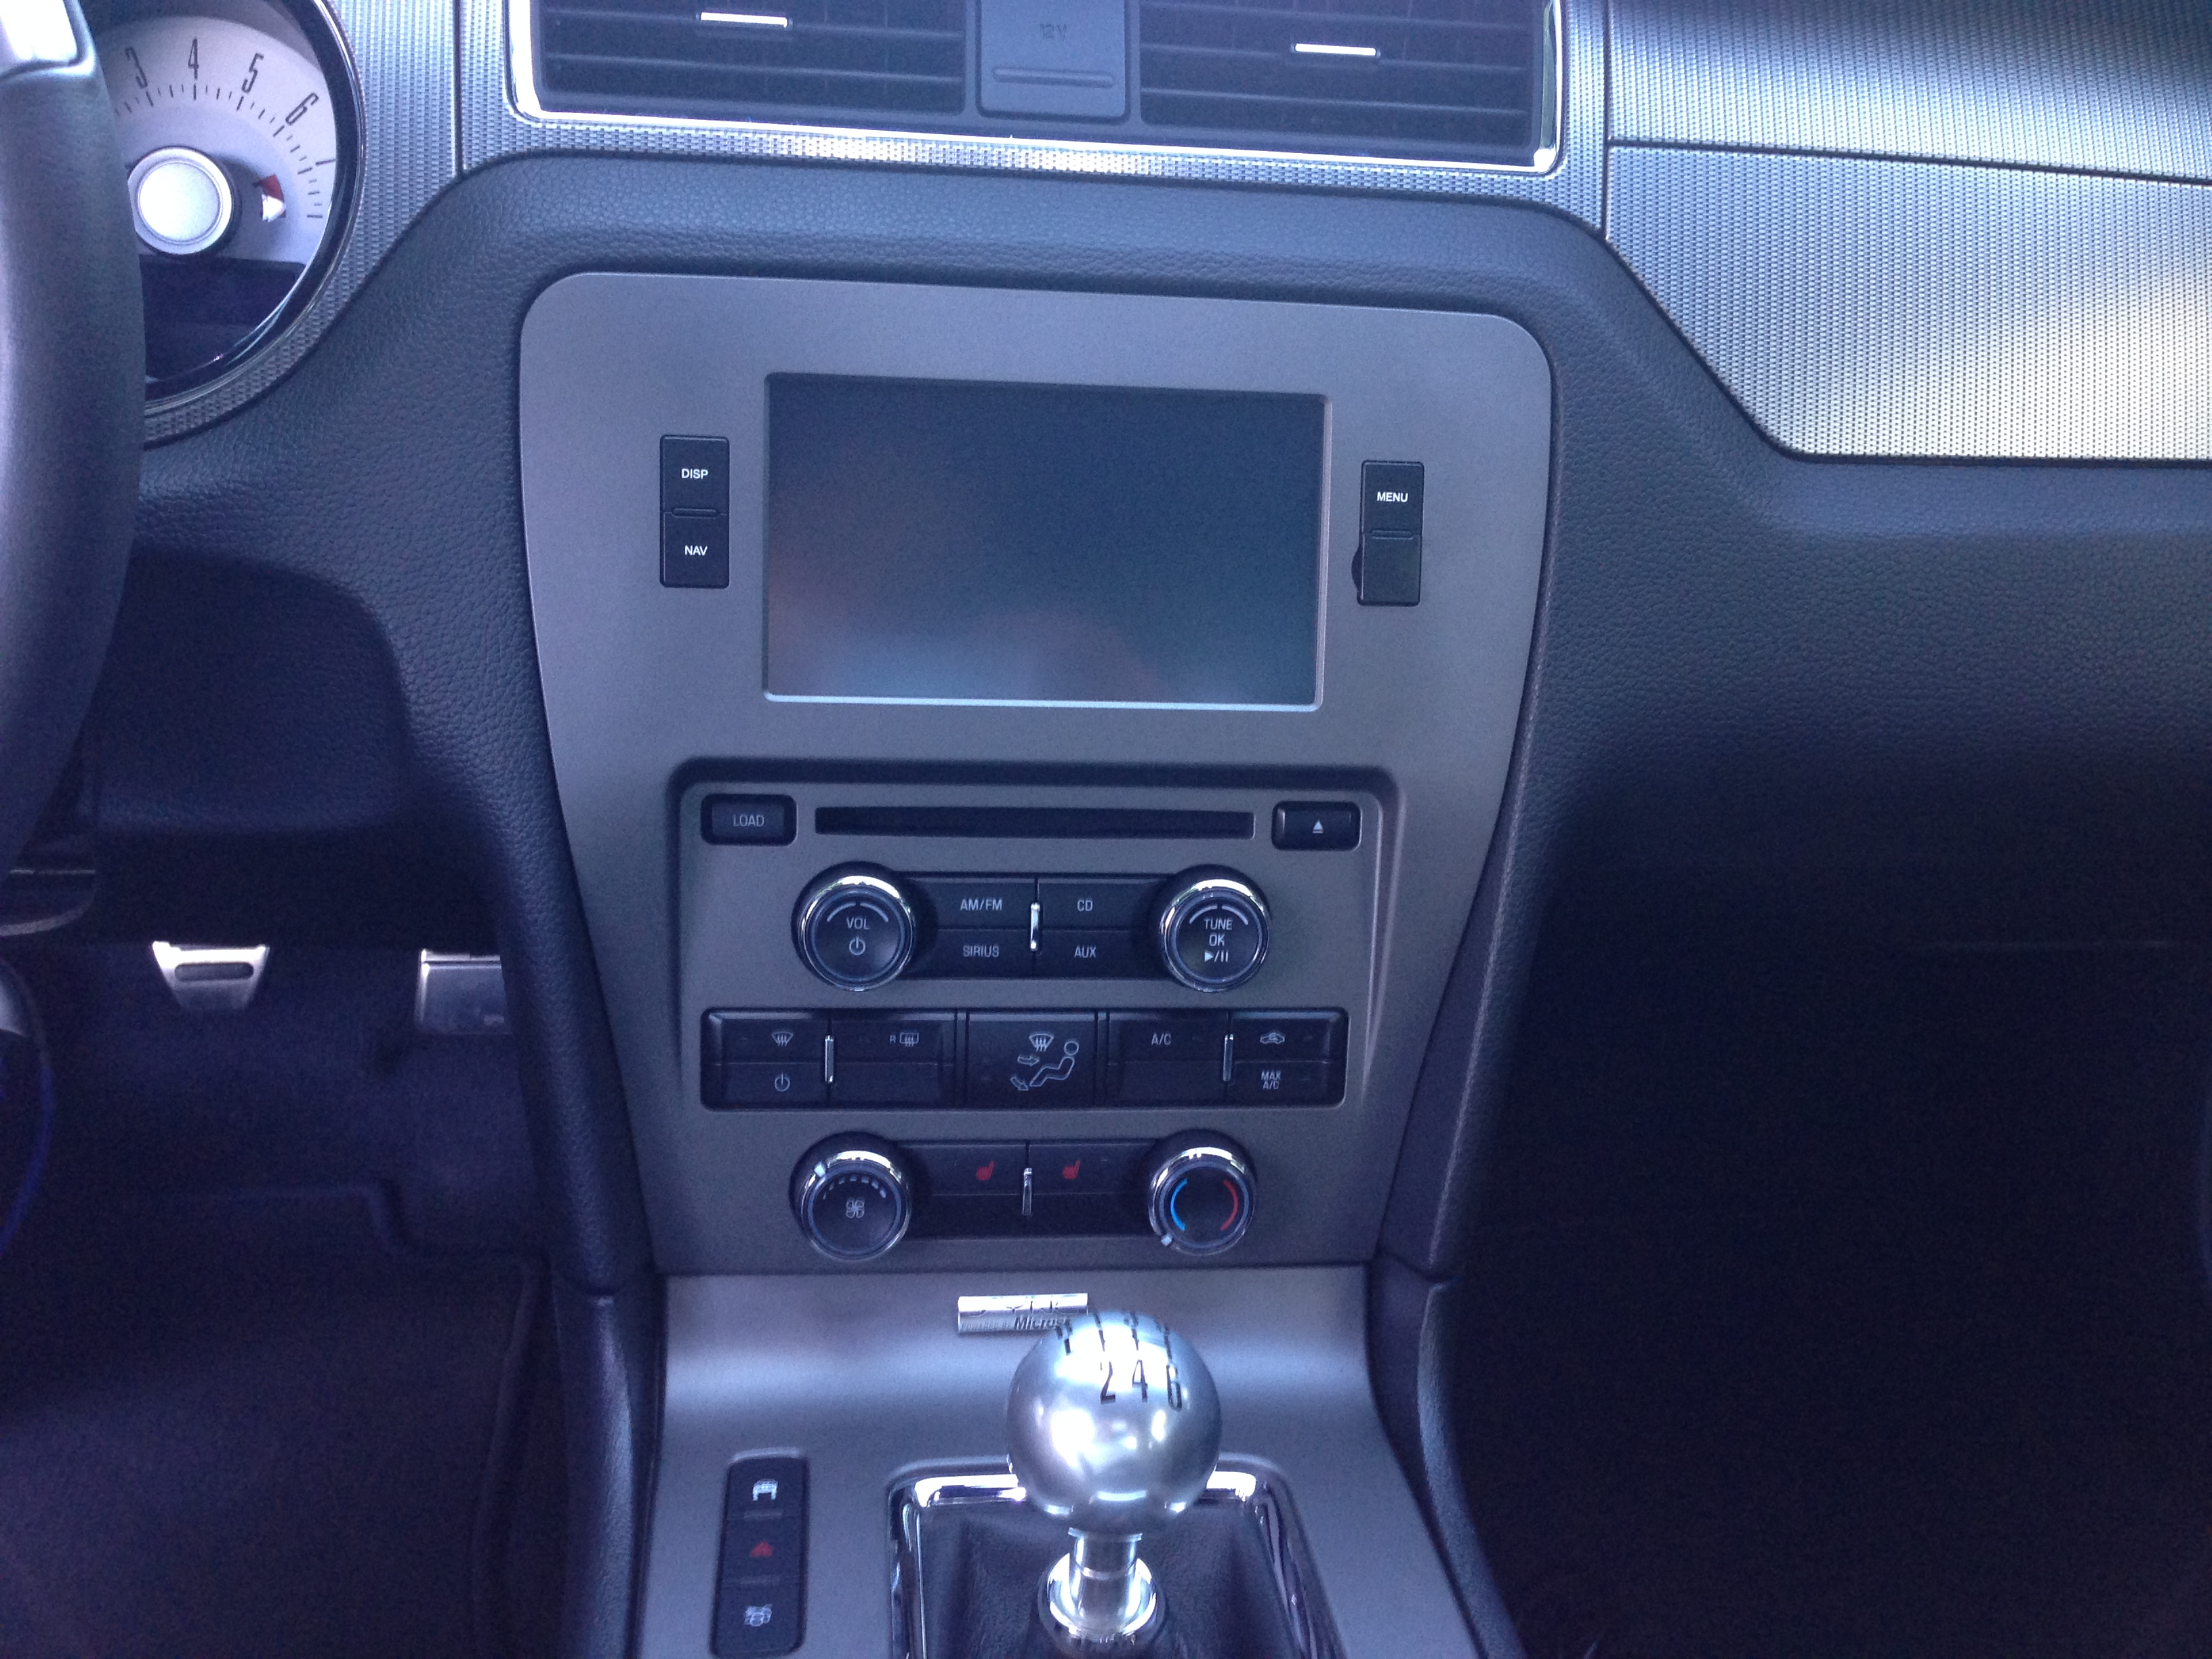 installed raxiom gps 2011 mustang gt